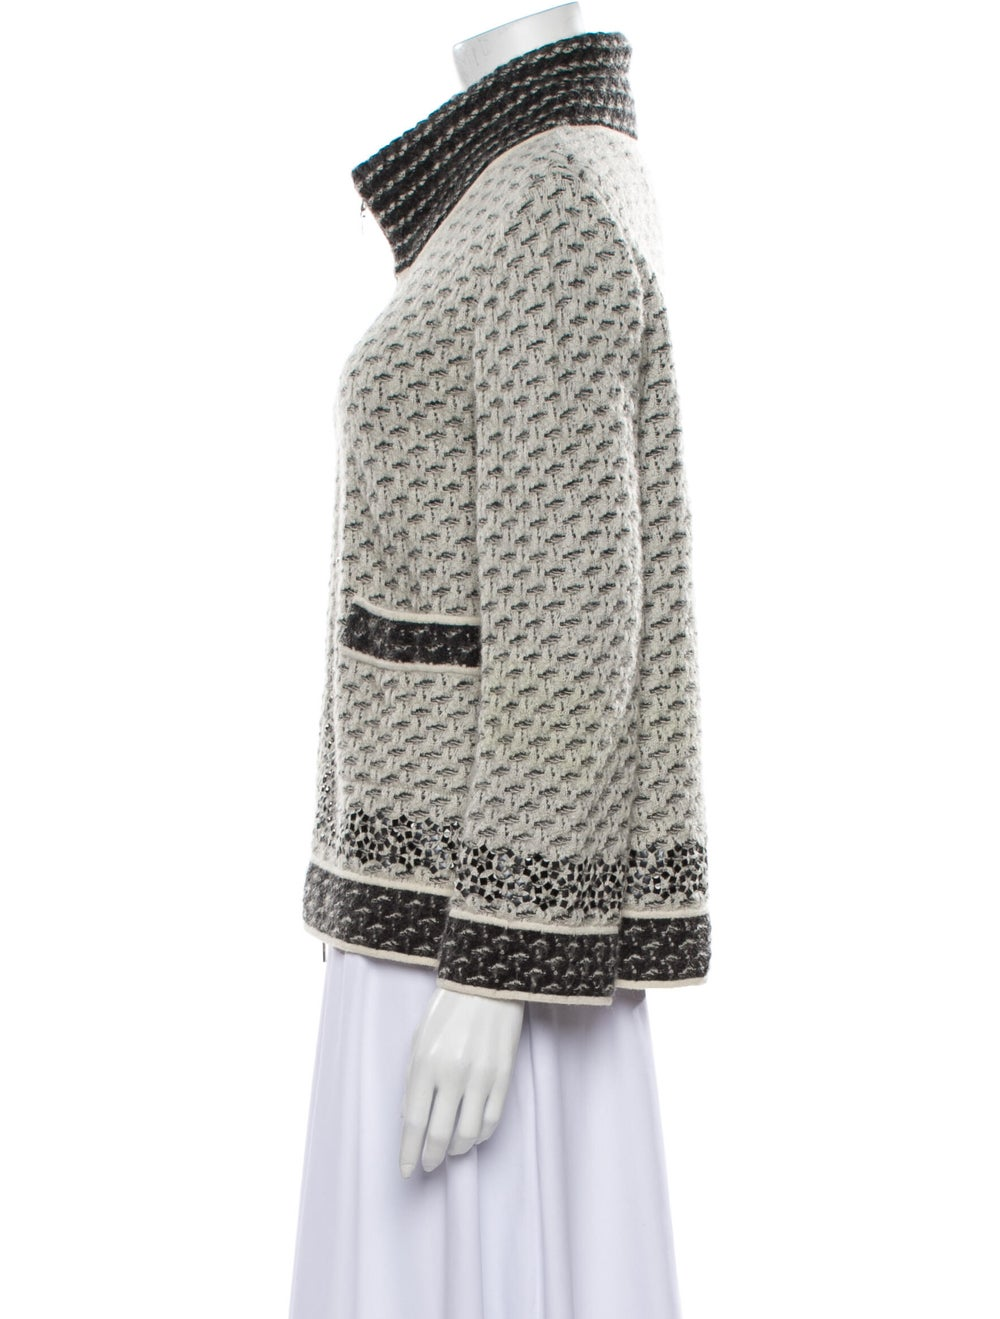 Chanel 2010 Tweed Pattern Cape - image 2